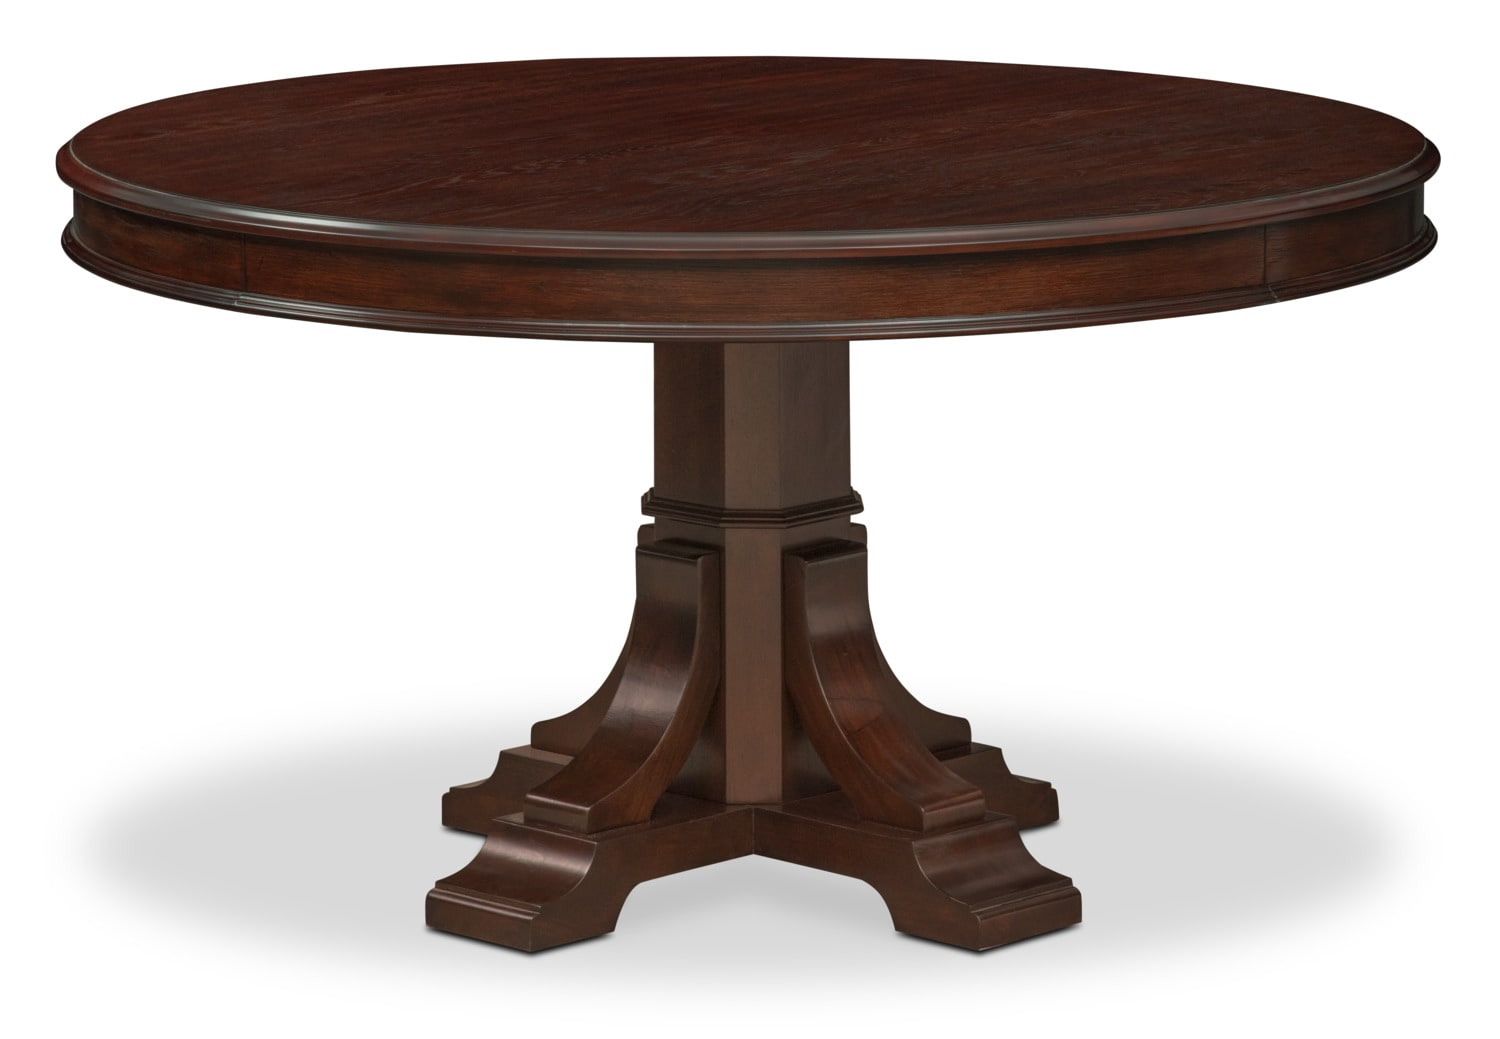 Wood Dining Room Tables Part - 16: Vienna Round Dining Table - Merlot